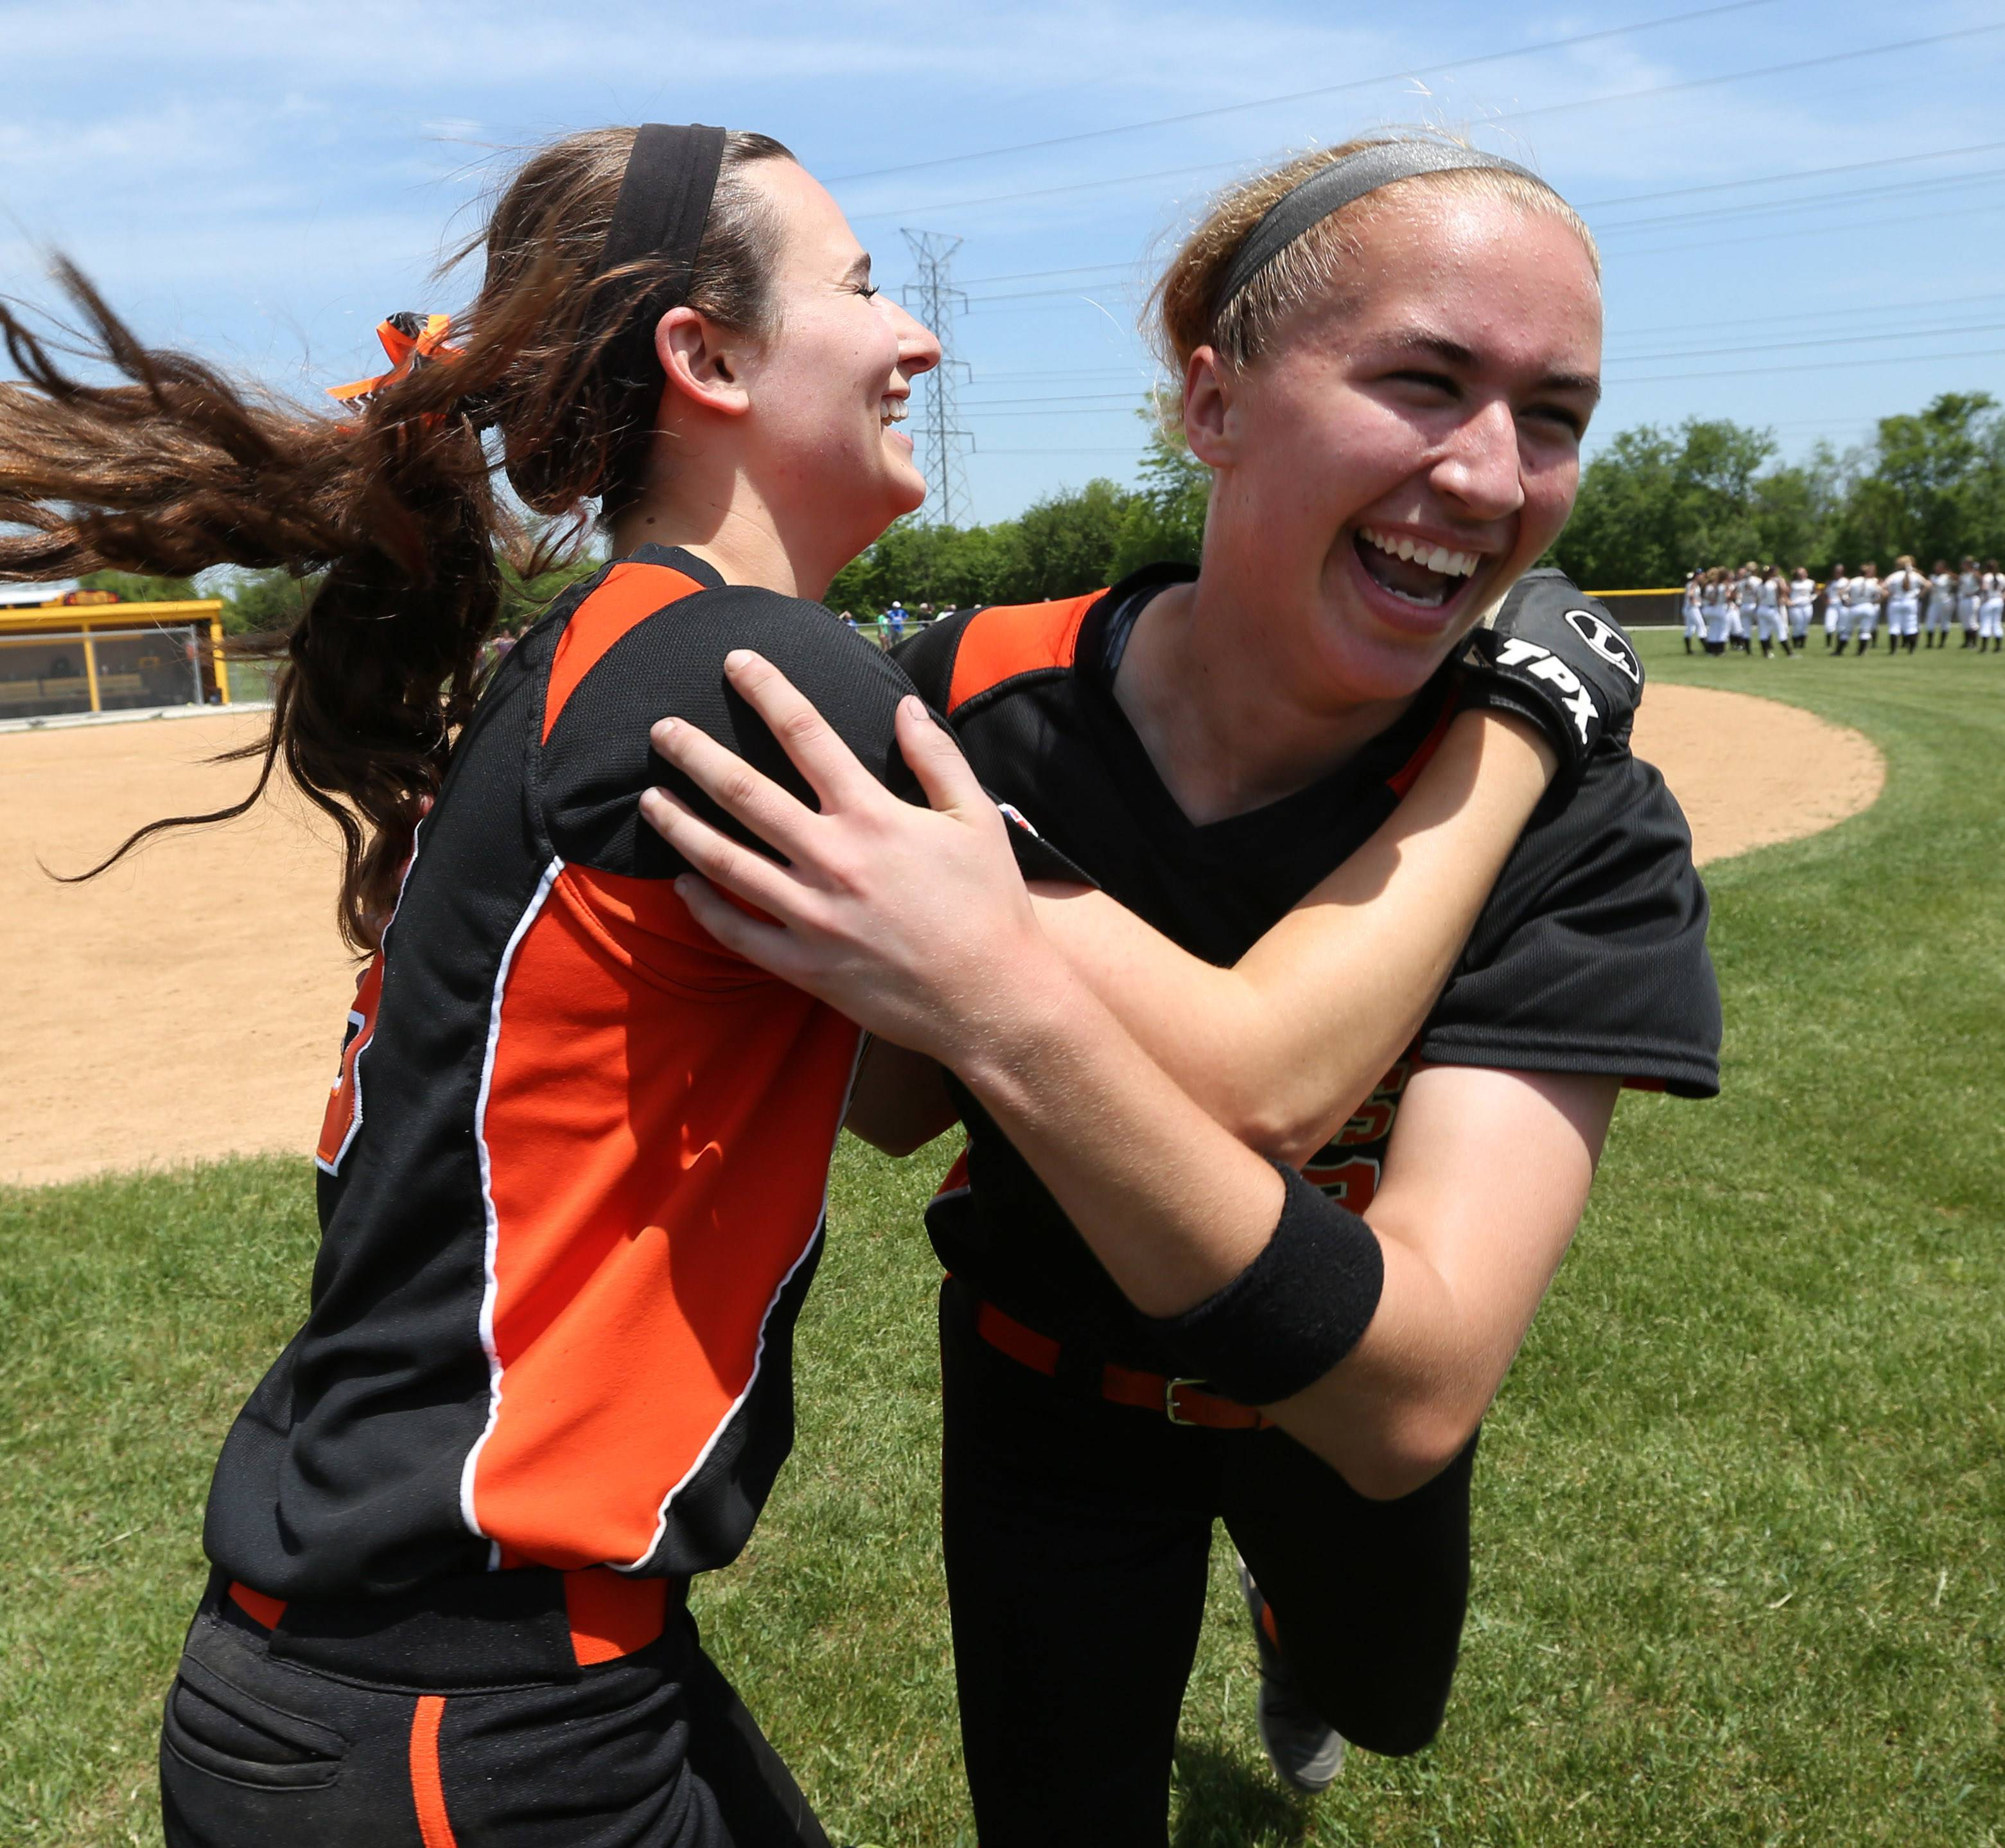 Libertyville's Tayler Oberman, right, gets a hug from teammate Andi Katz after Oberman's walk-off single against Carmel in the Class 4A Carmel softball regional final Saturday.